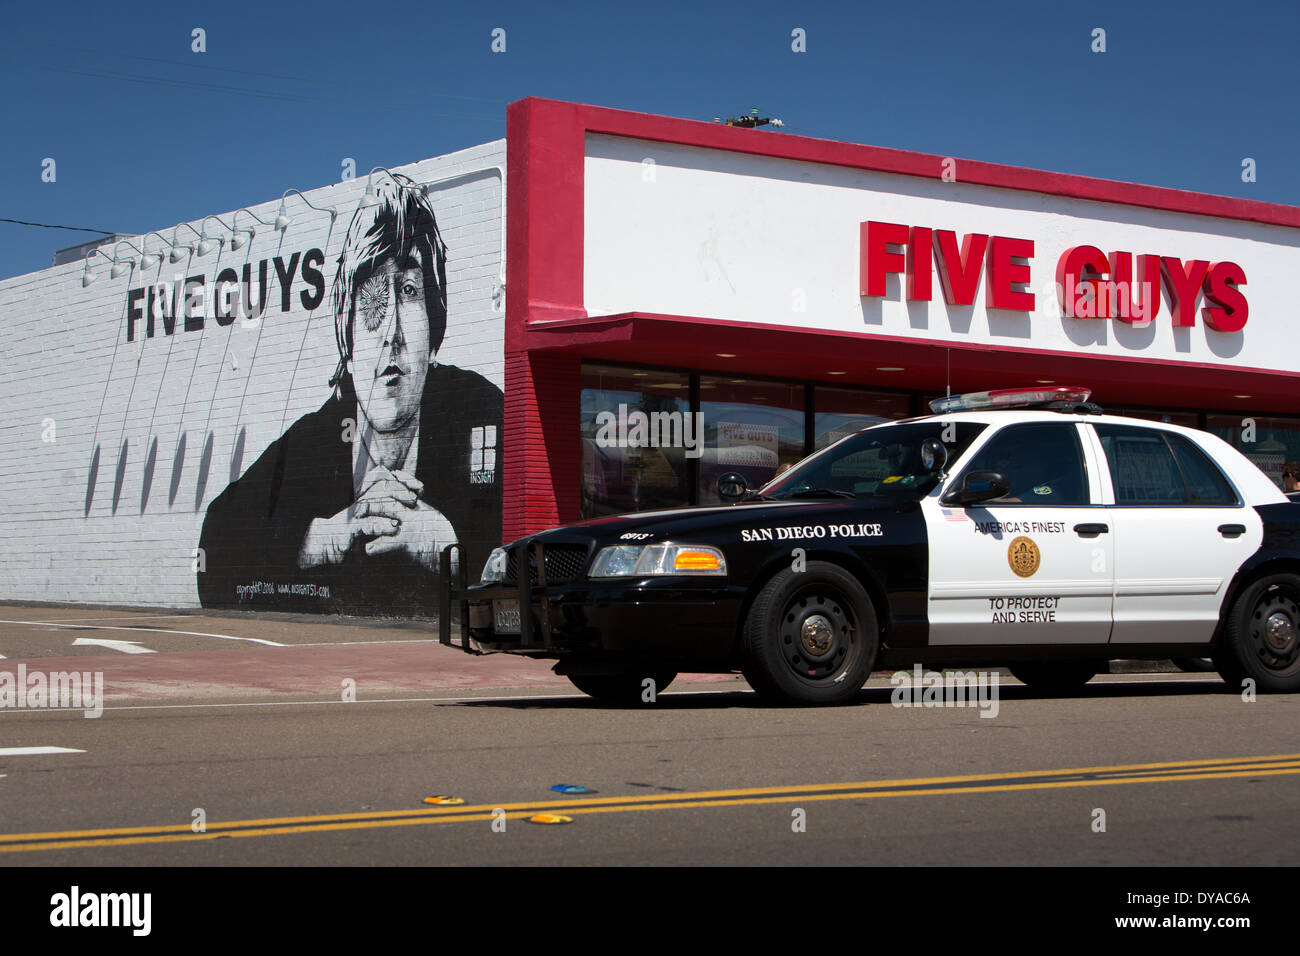 Police cruiser in front of a Five Guys burger restaurant with a John Lennon mural, in April 2014. - Stock Image